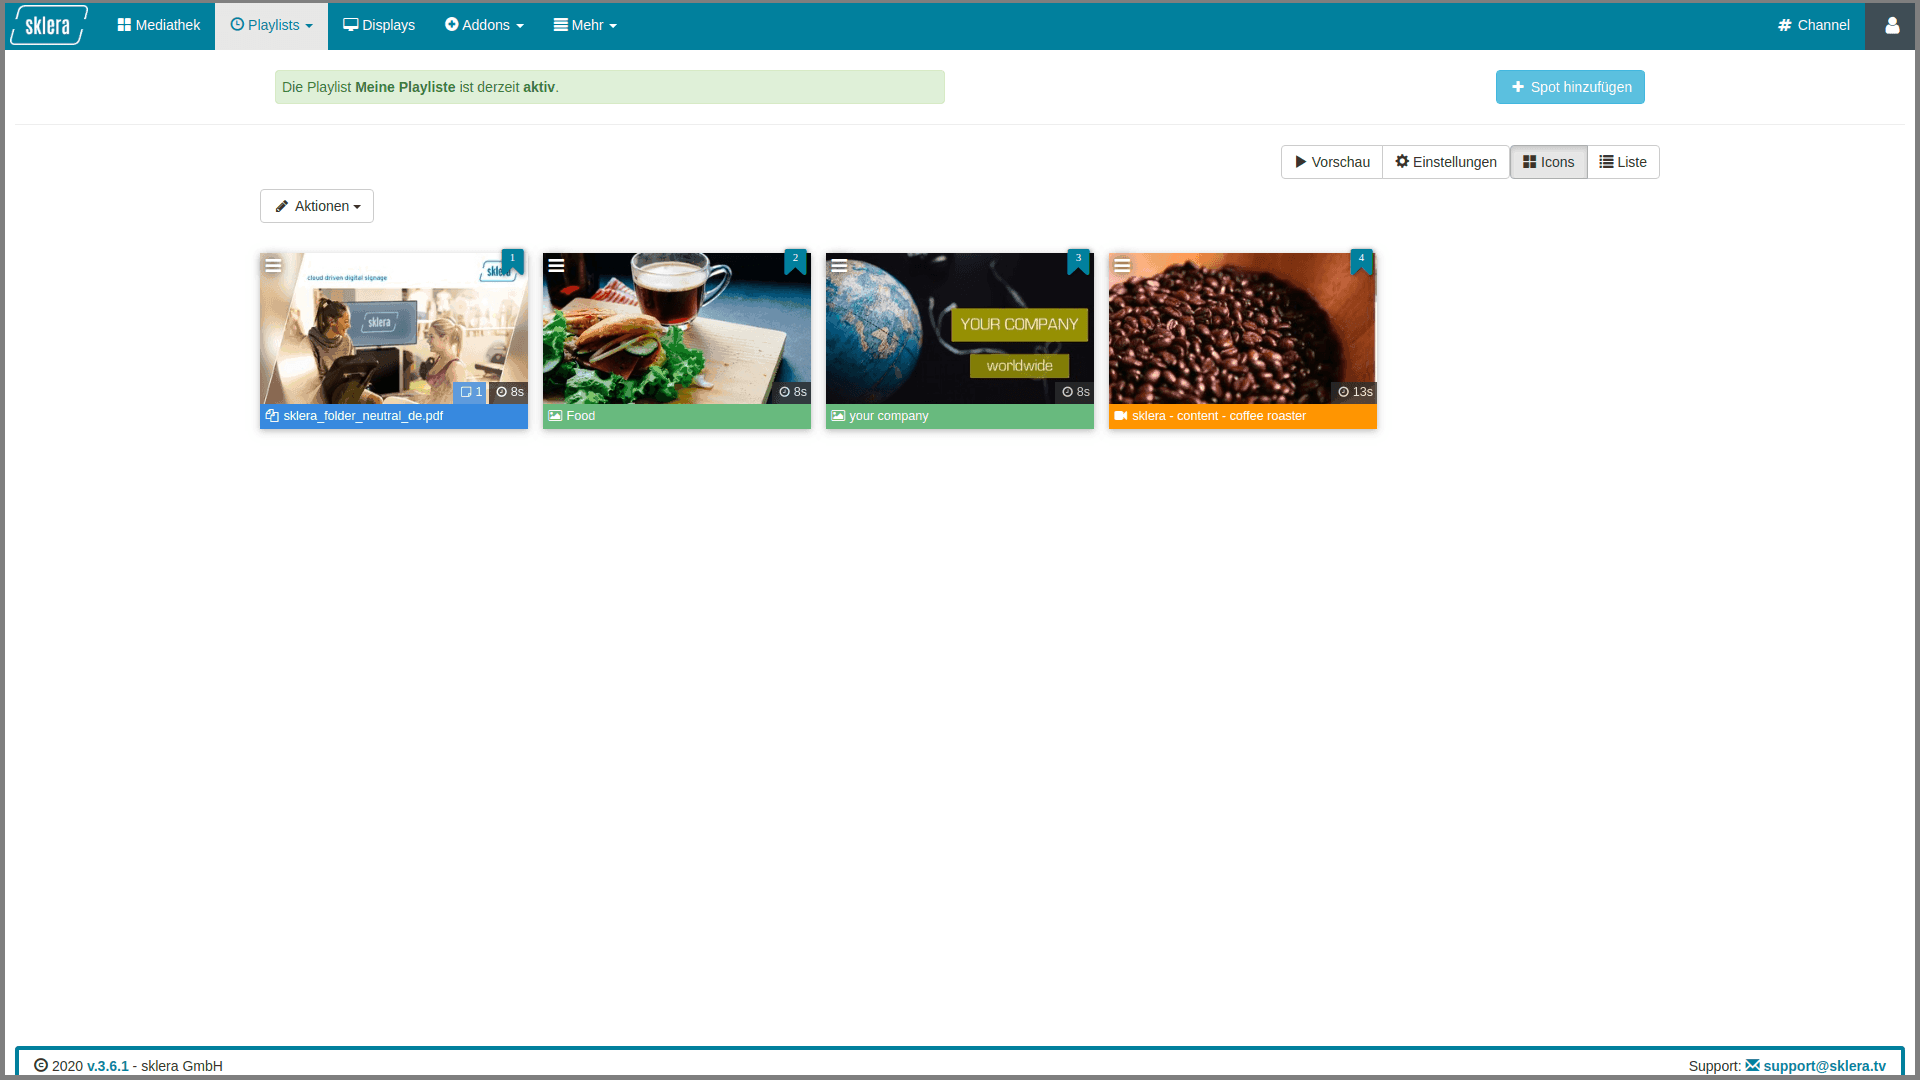 This image shows playlists in the sklera cms.